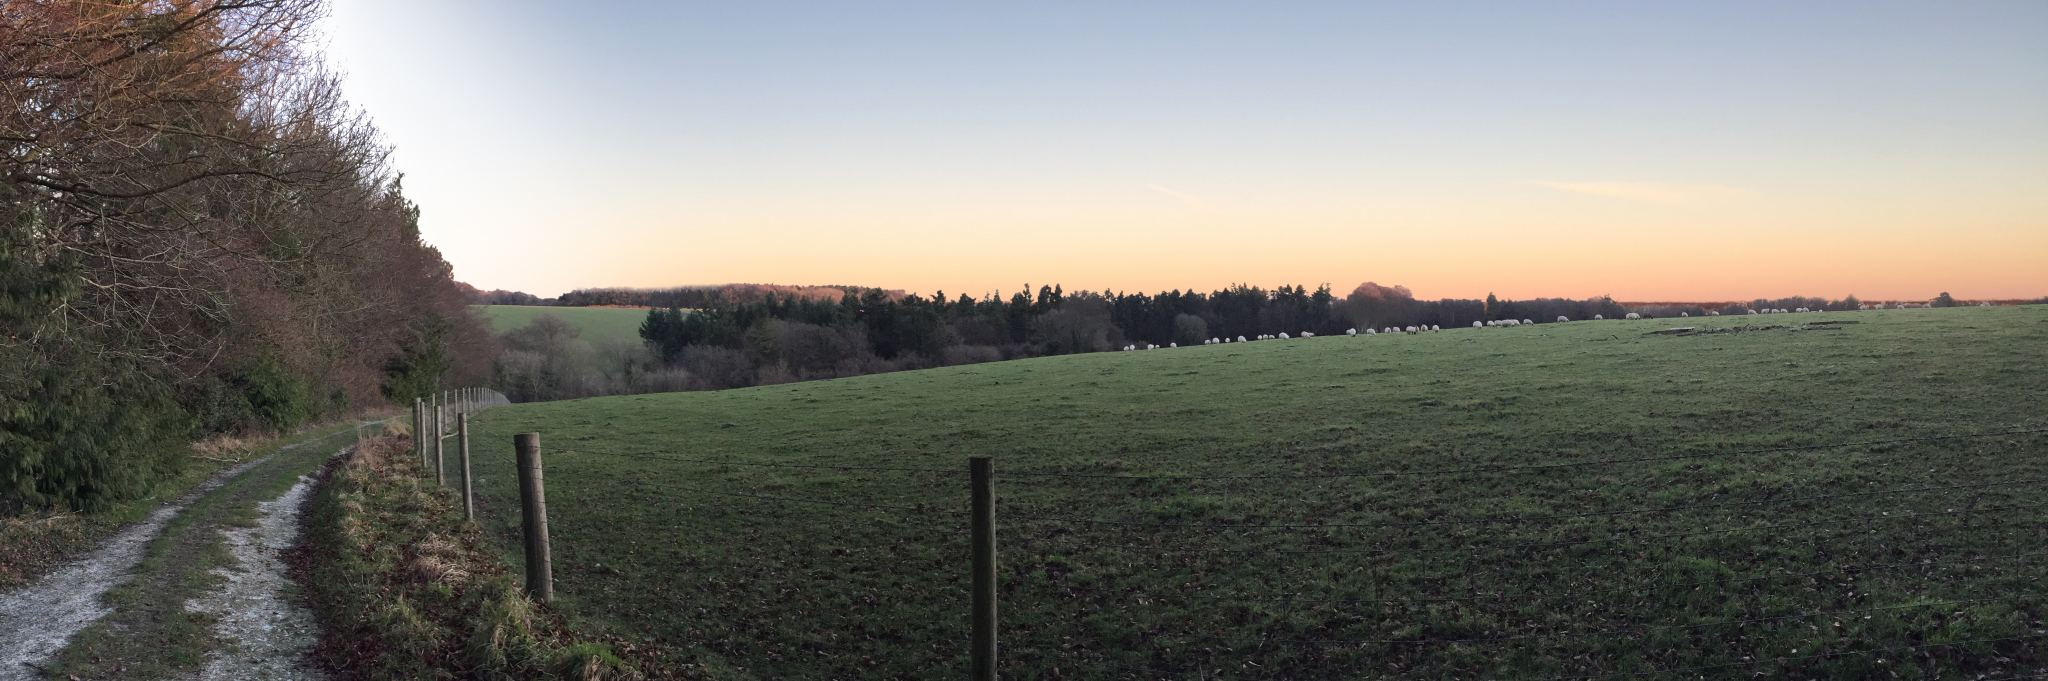 3 Christmas Walks in the English Country Side